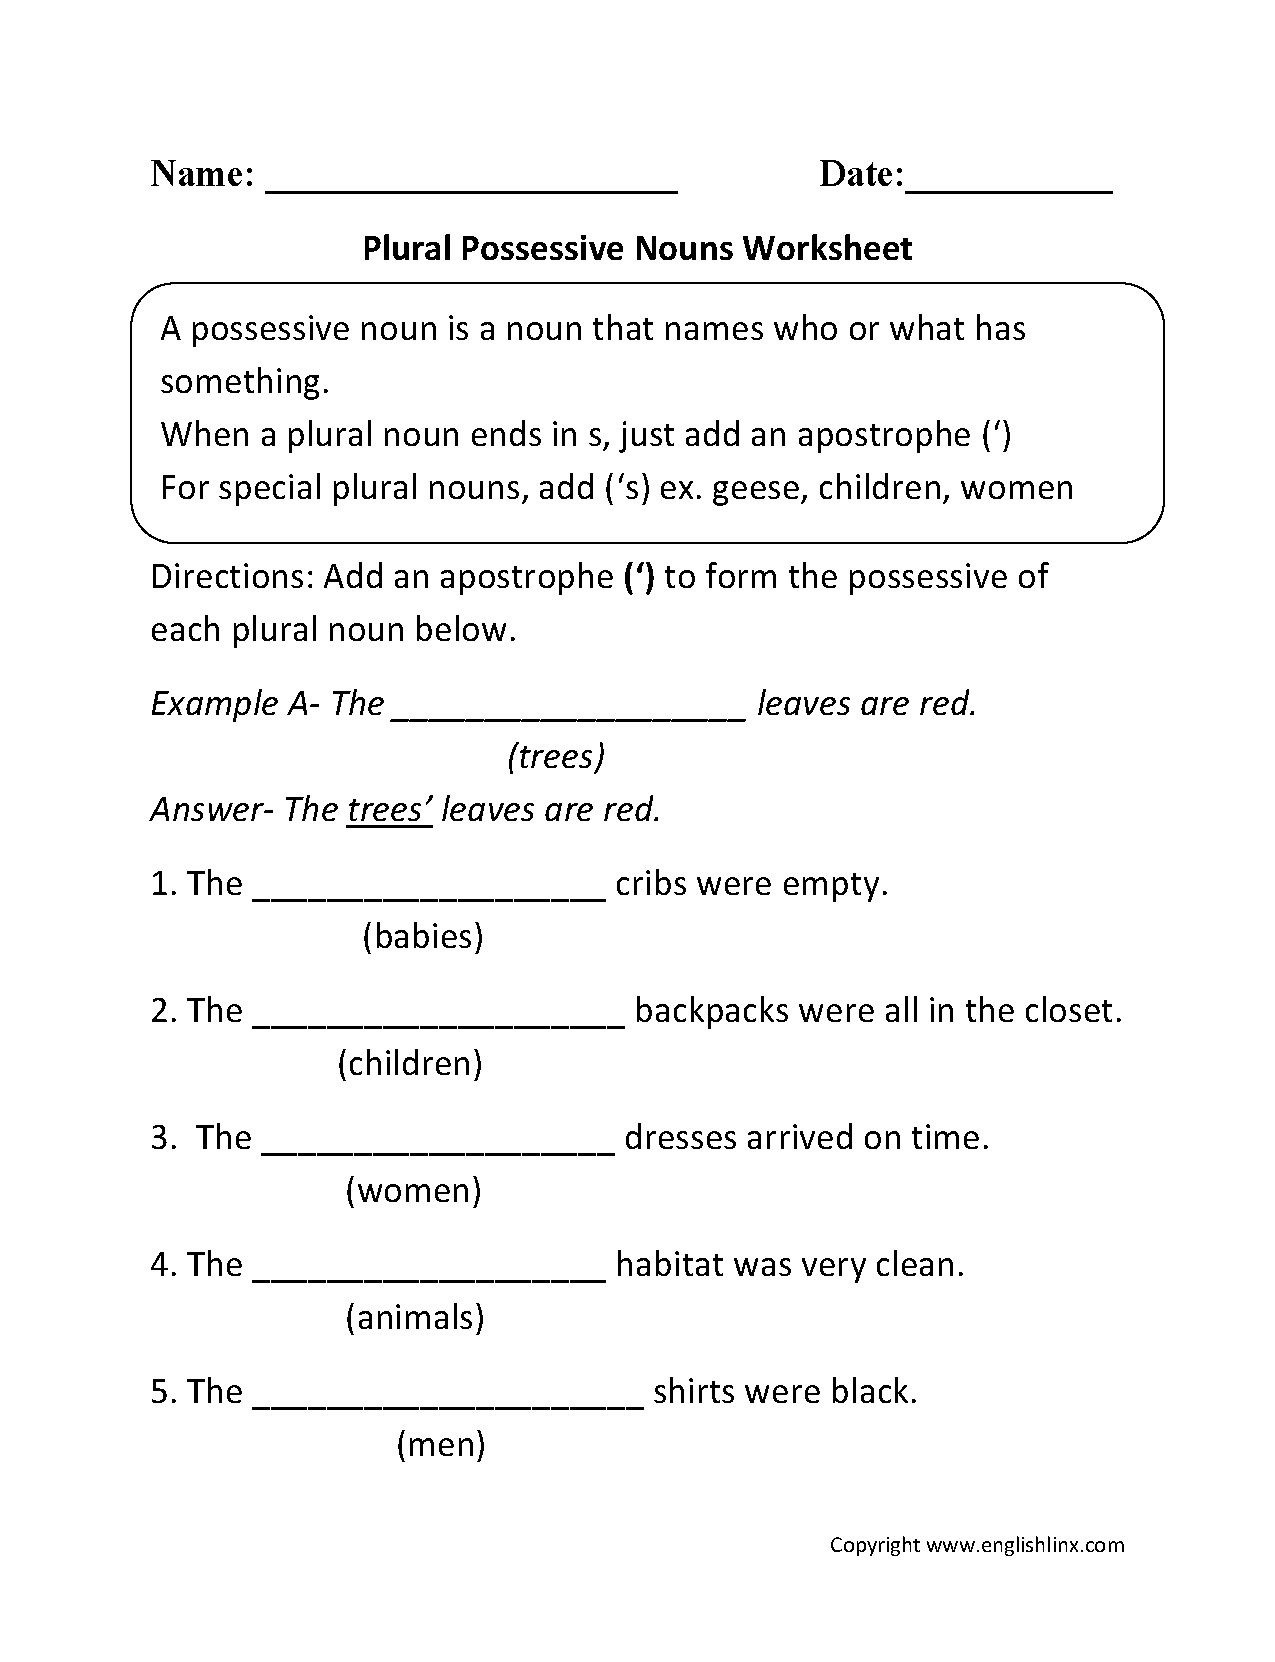 worksheet Irregular Plural Nouns Worksheet 2nd Grade plural possessive nouns worksheets places to visit pinterest worksheets